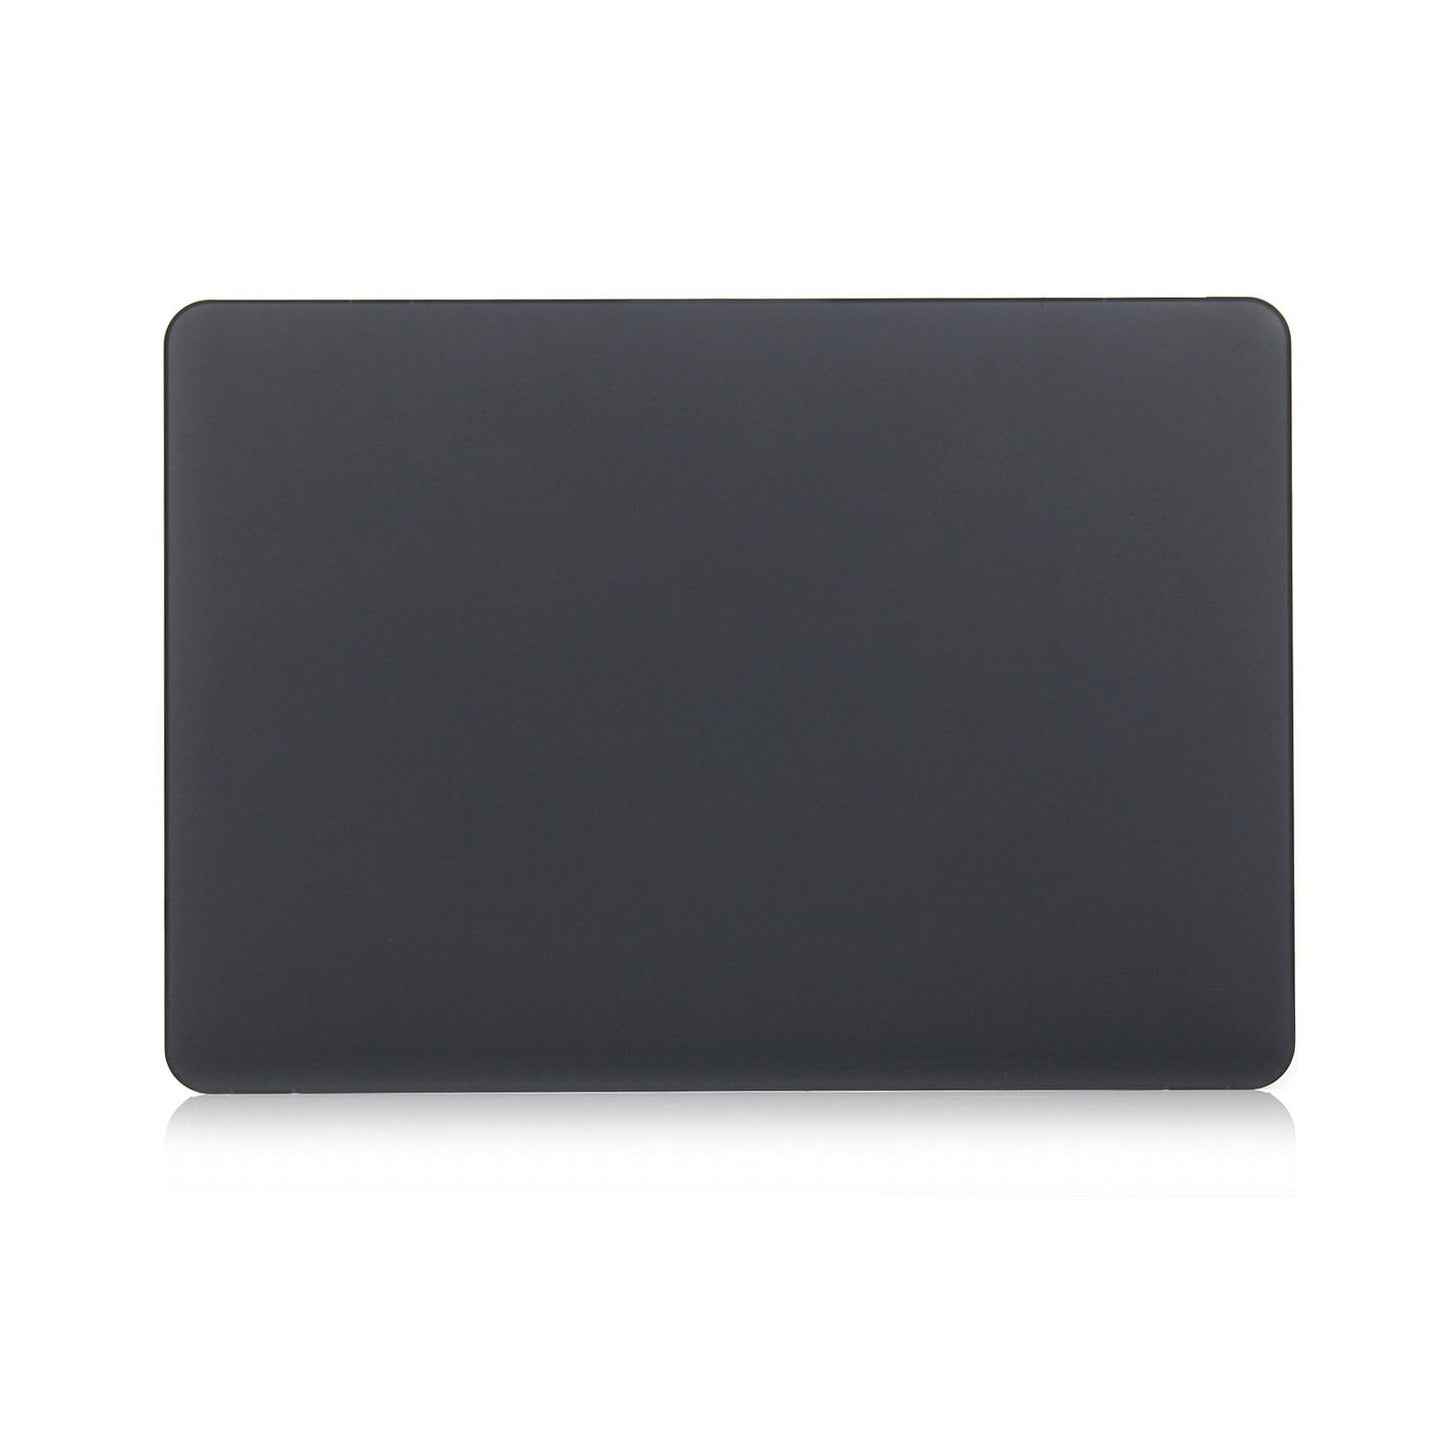 Blu Element Hardshell Soft Touch Case Black for MacBook Pro 13 inch Touch Bar